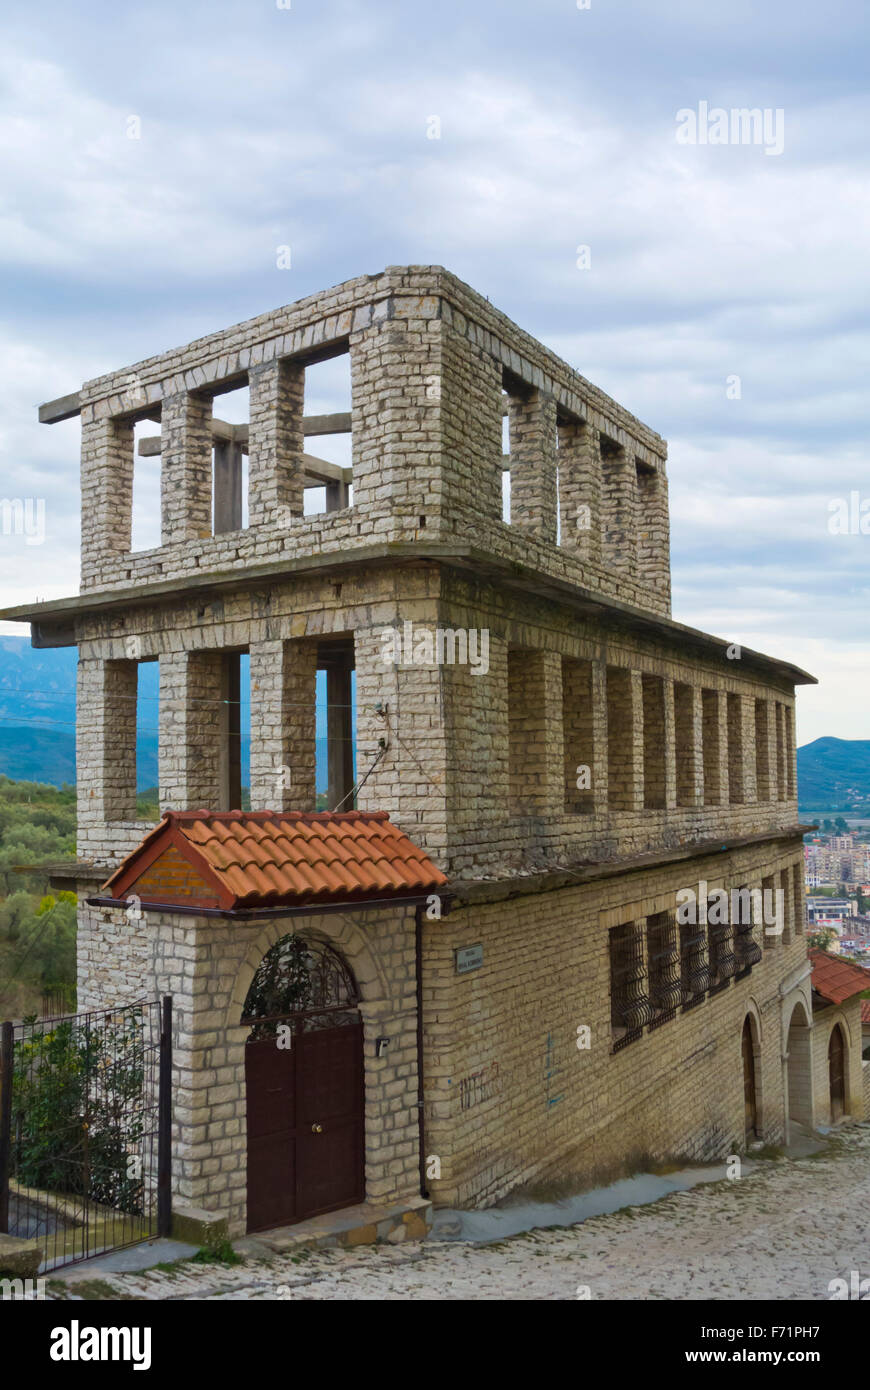 Unfinished residential building, Rruga Mihal Komnena, road to Kalaja, the castle, fortress hill, Berat, Albania - Stock Image